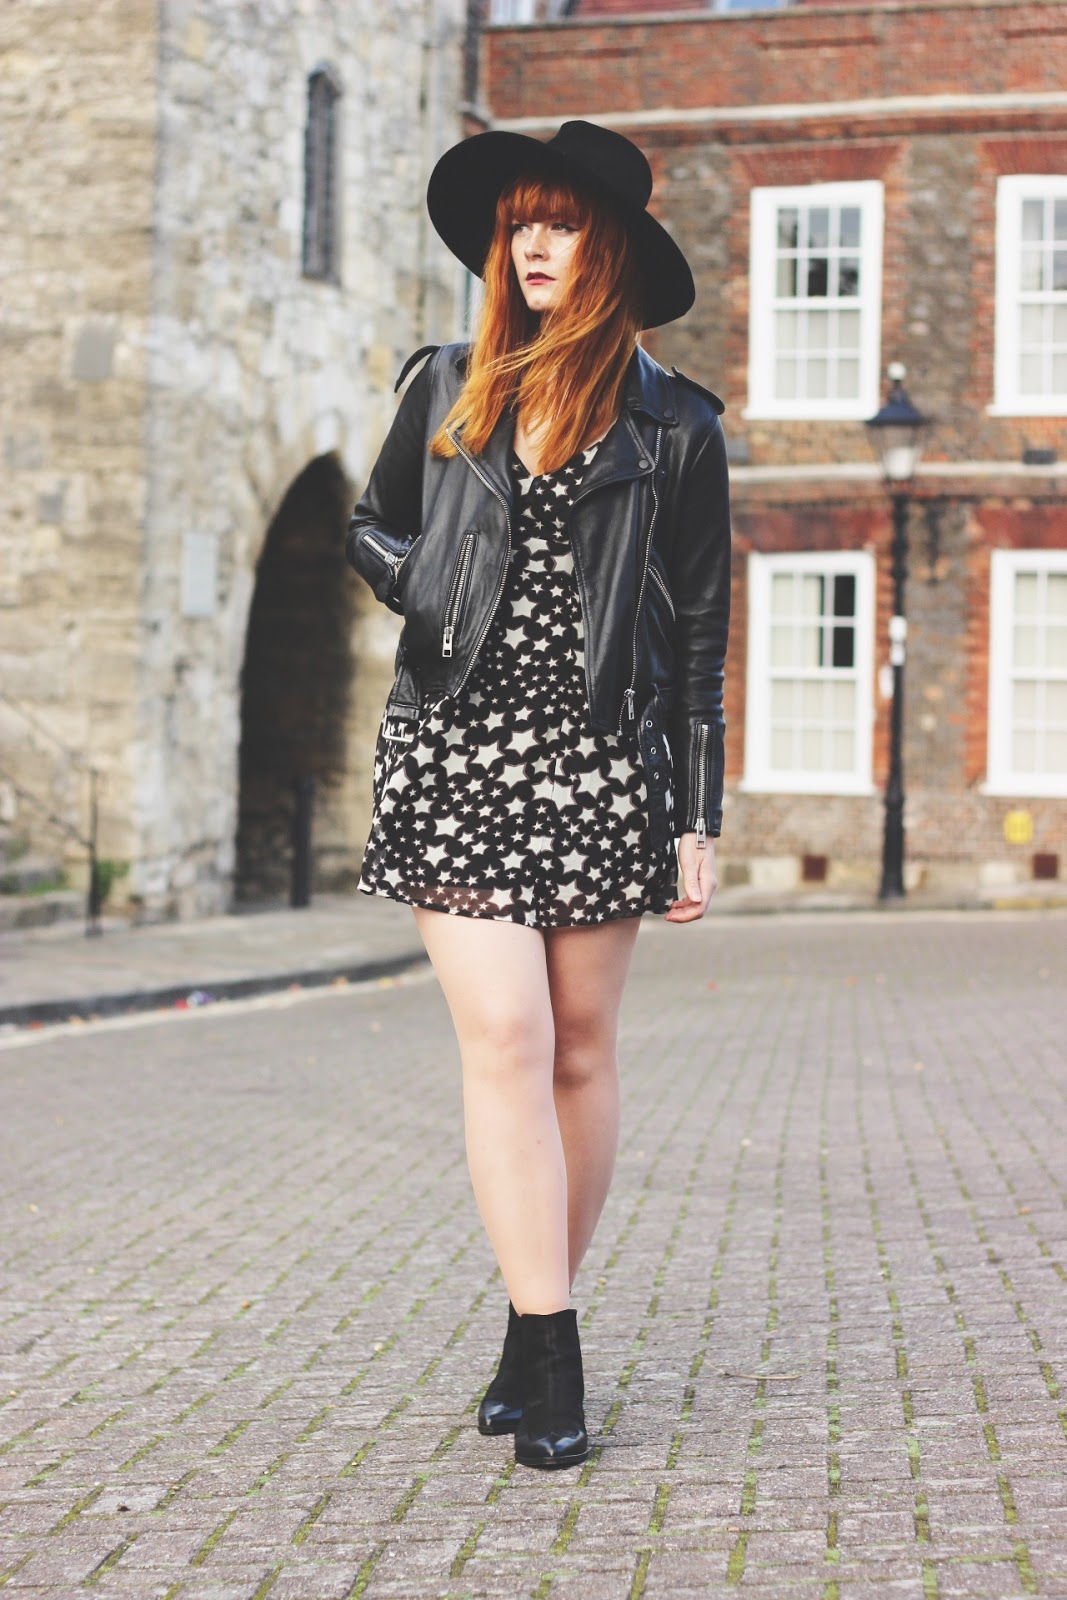 UK Vintage Fashion Blogger Red Hair Leather AllSaints Biker Jacket Star Dress